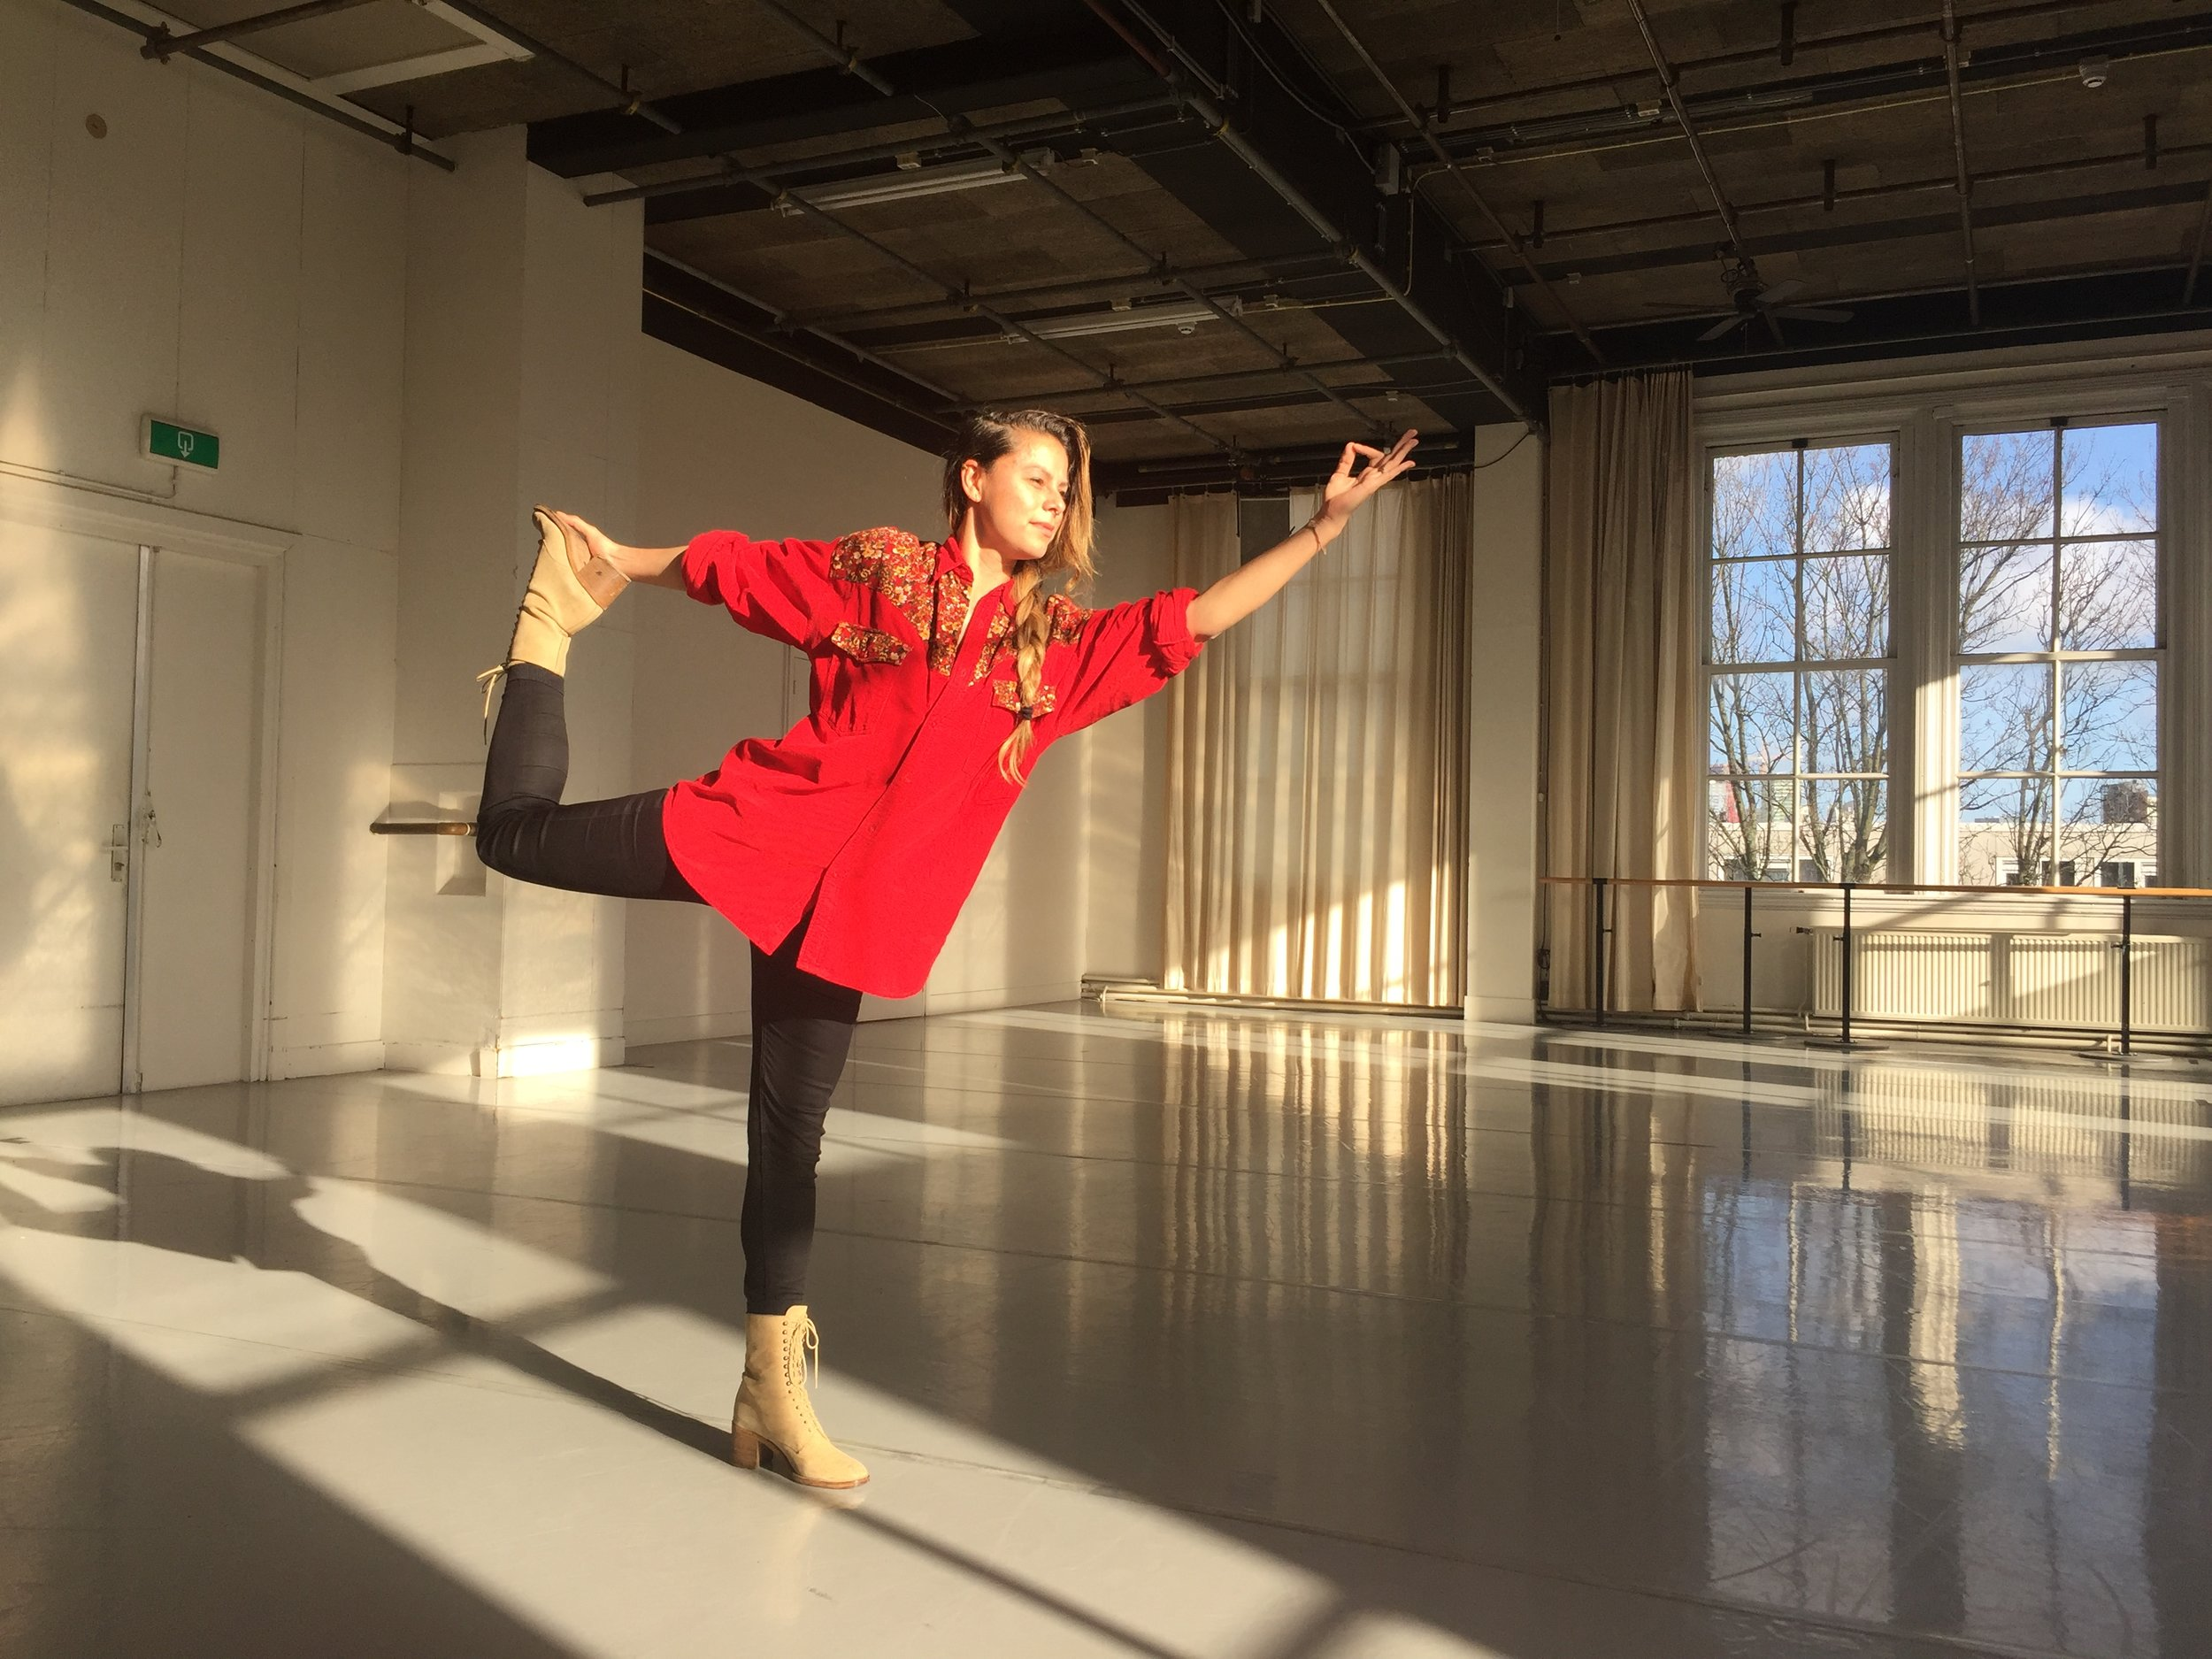 conny-janssen-danst_studio_rotterdam_yoga-for-crowdfunding.png